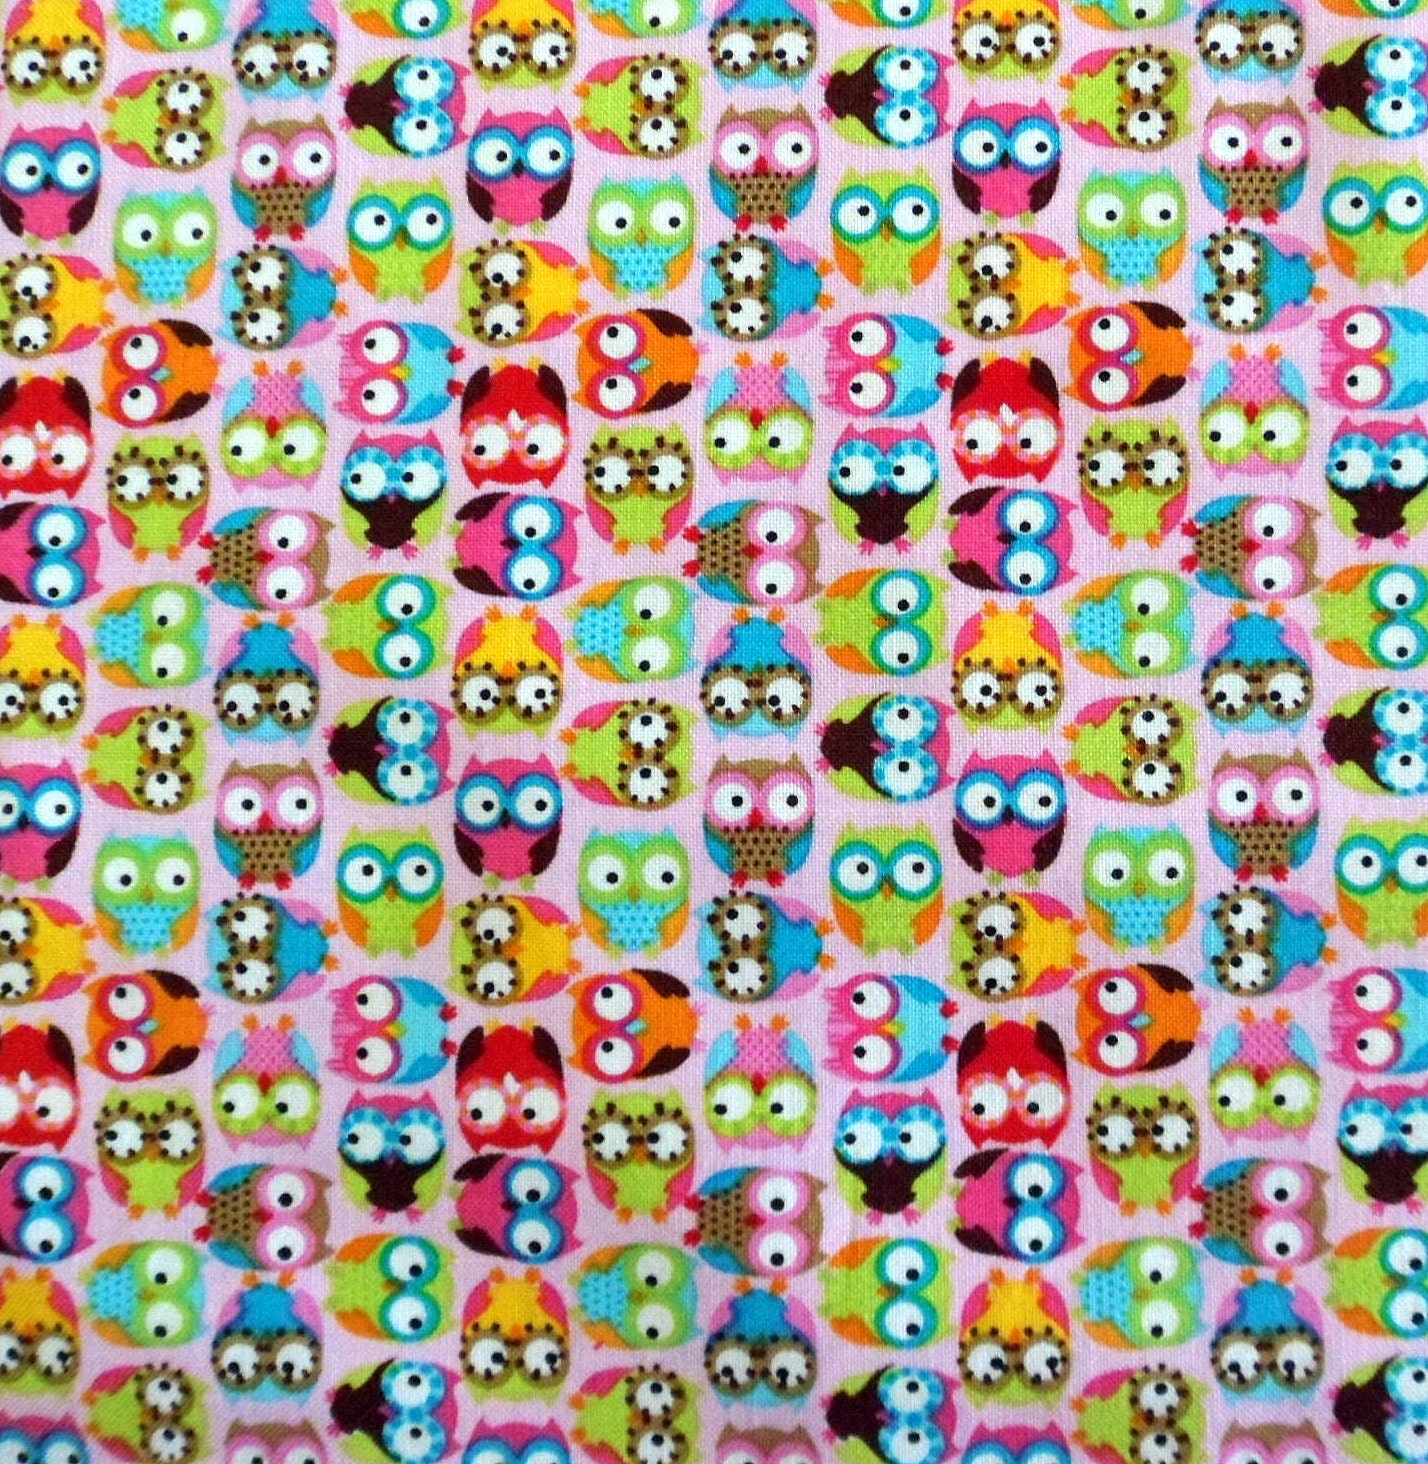 Mini Owl Fabric Pink Fabric with Colorful Owls Cotton Fabric